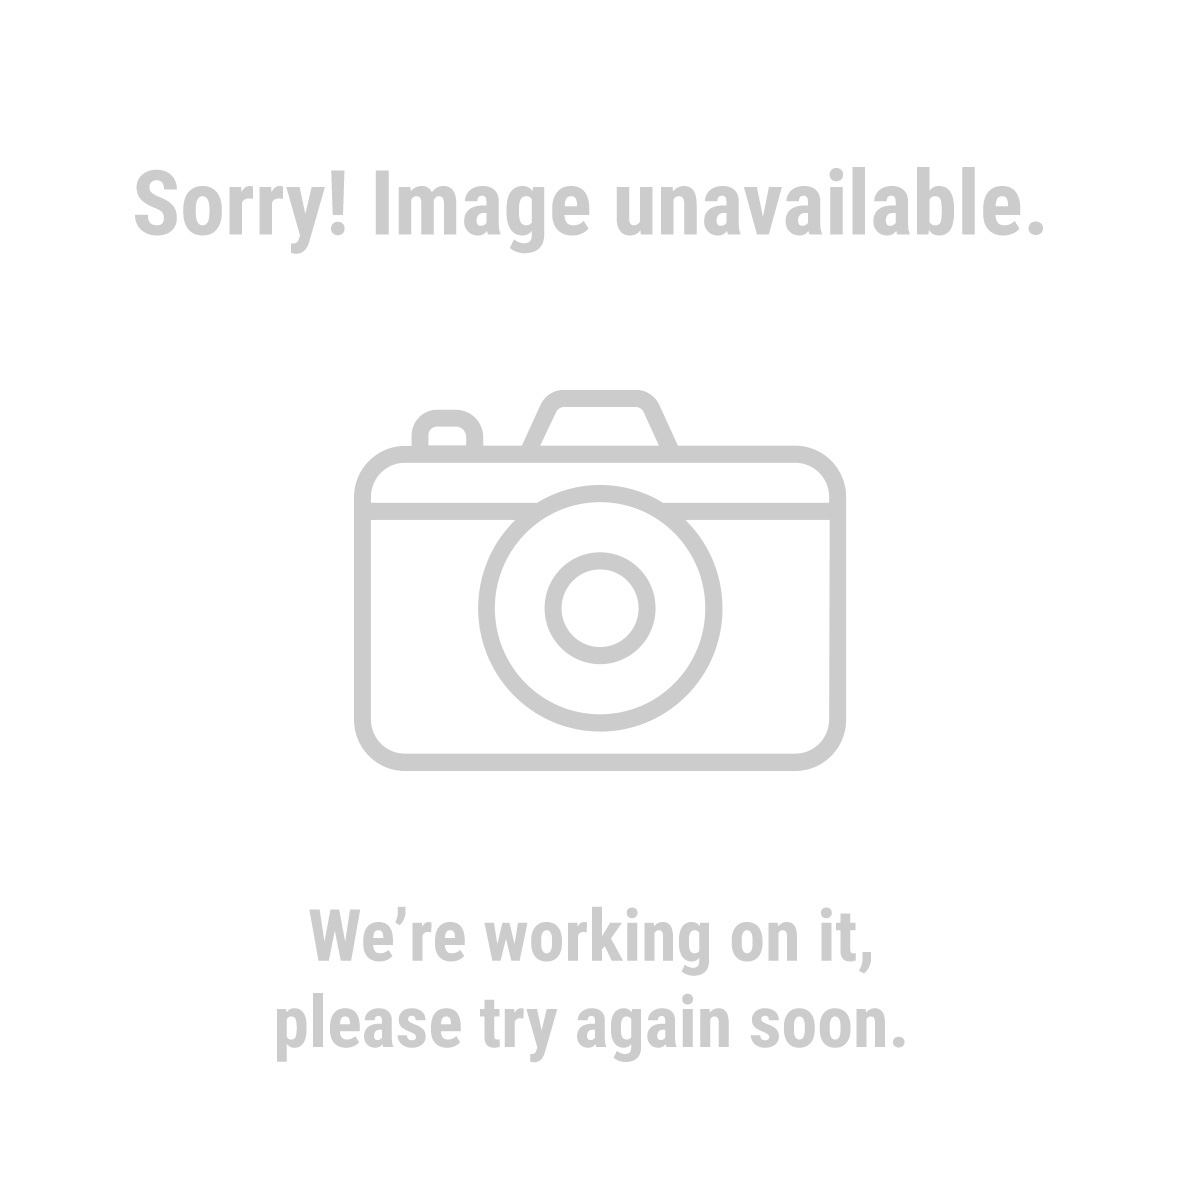 Pittsburgh® Automotive 61858 1 Ton Capacity Foldable Shop Crane